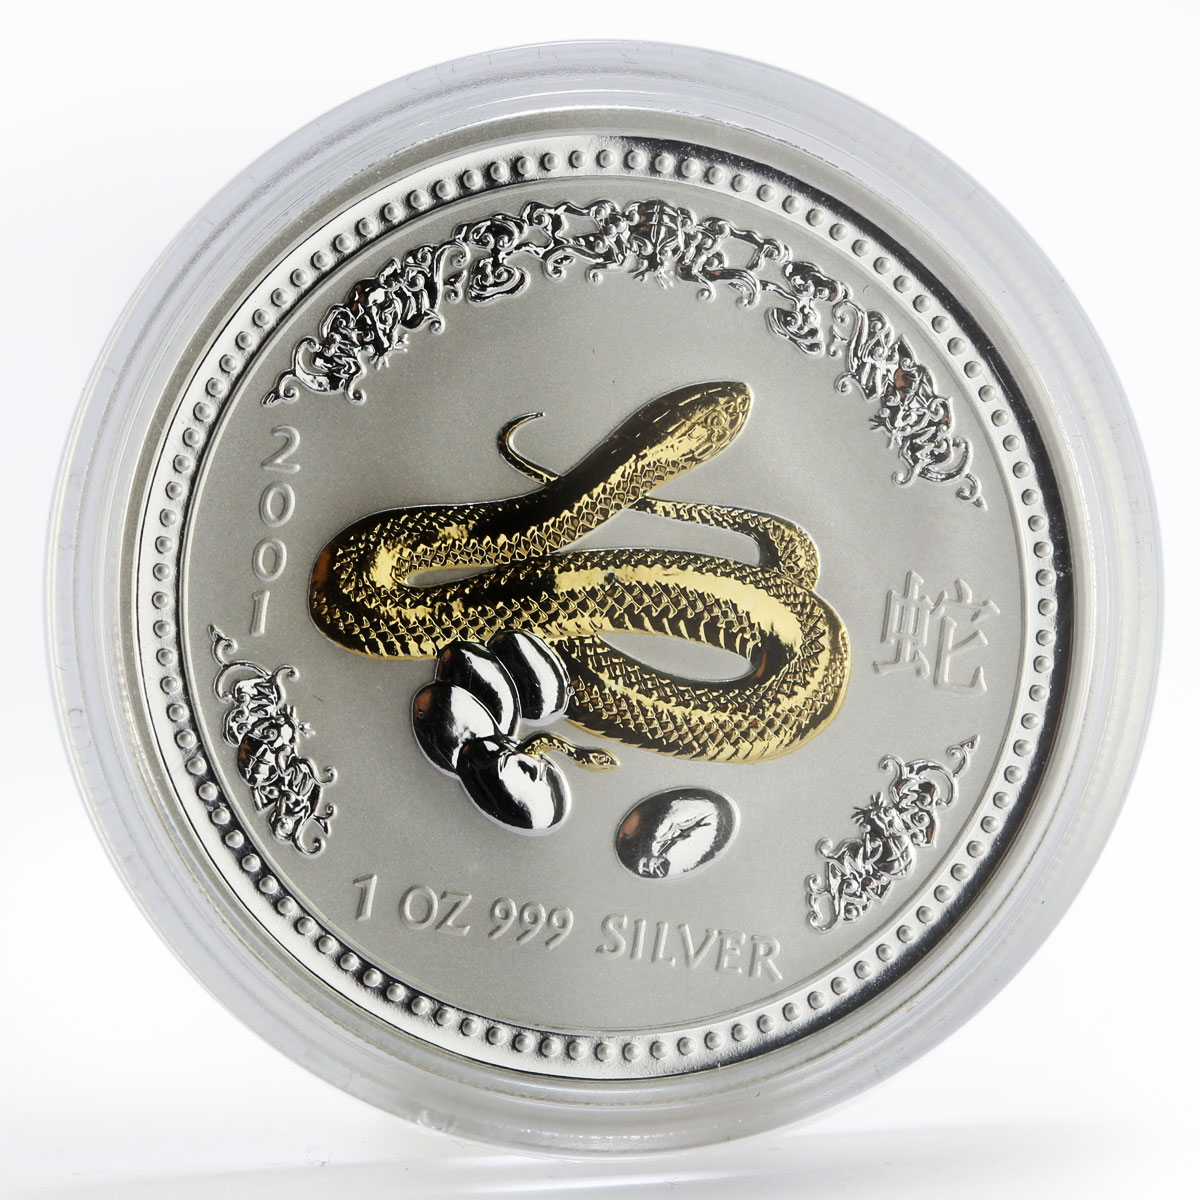 Australia 1 Dollar Lunar Year of the Snake gilded silver coin 1oz 2001